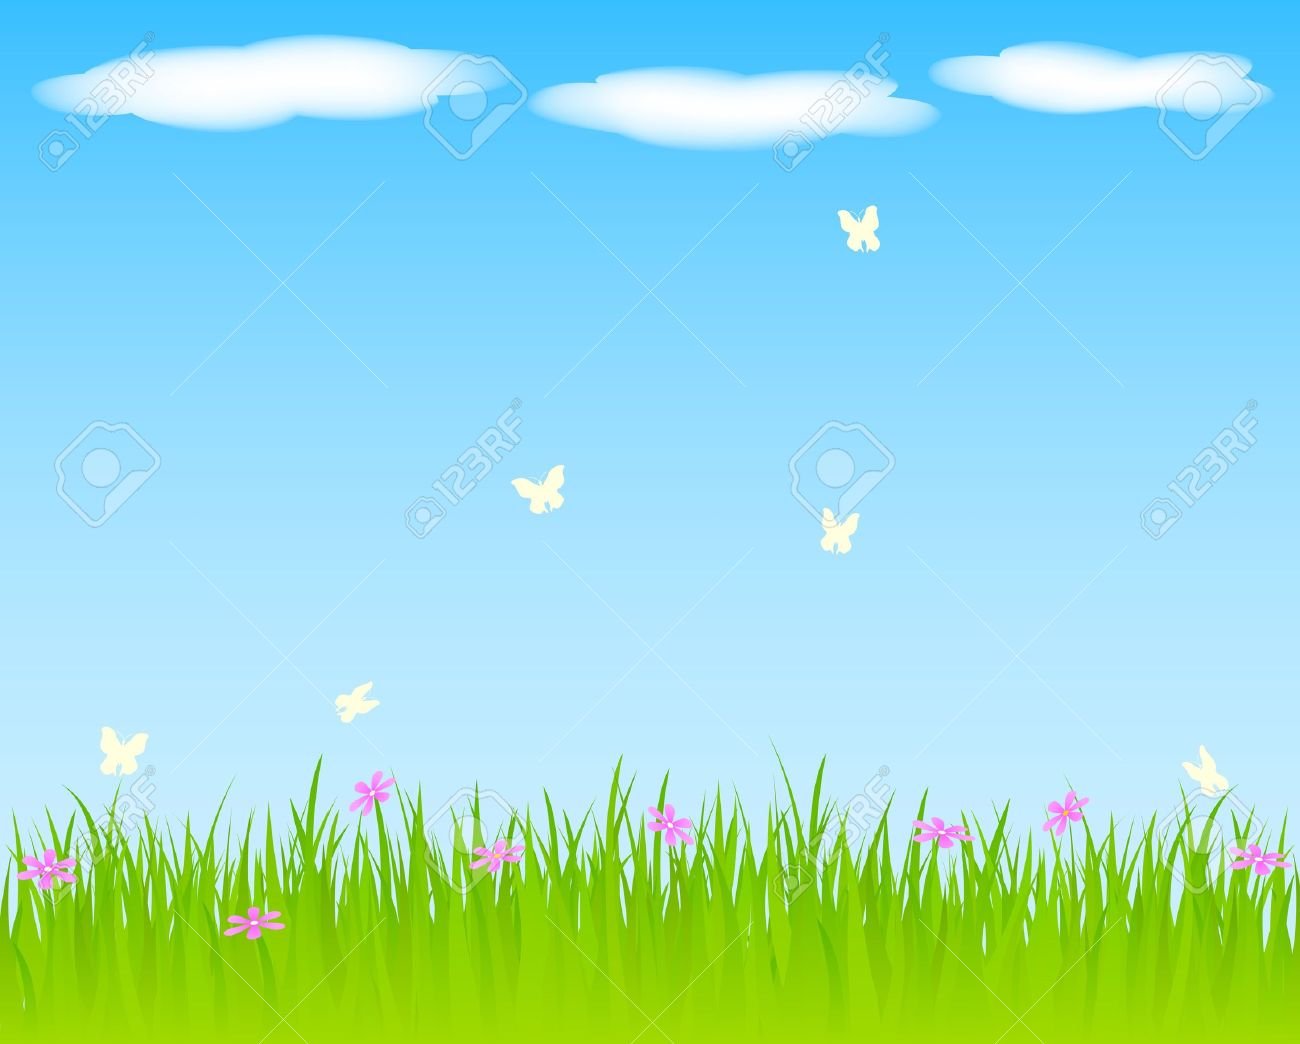 Spring background with grass and flowers. Stock Vector - 10776240